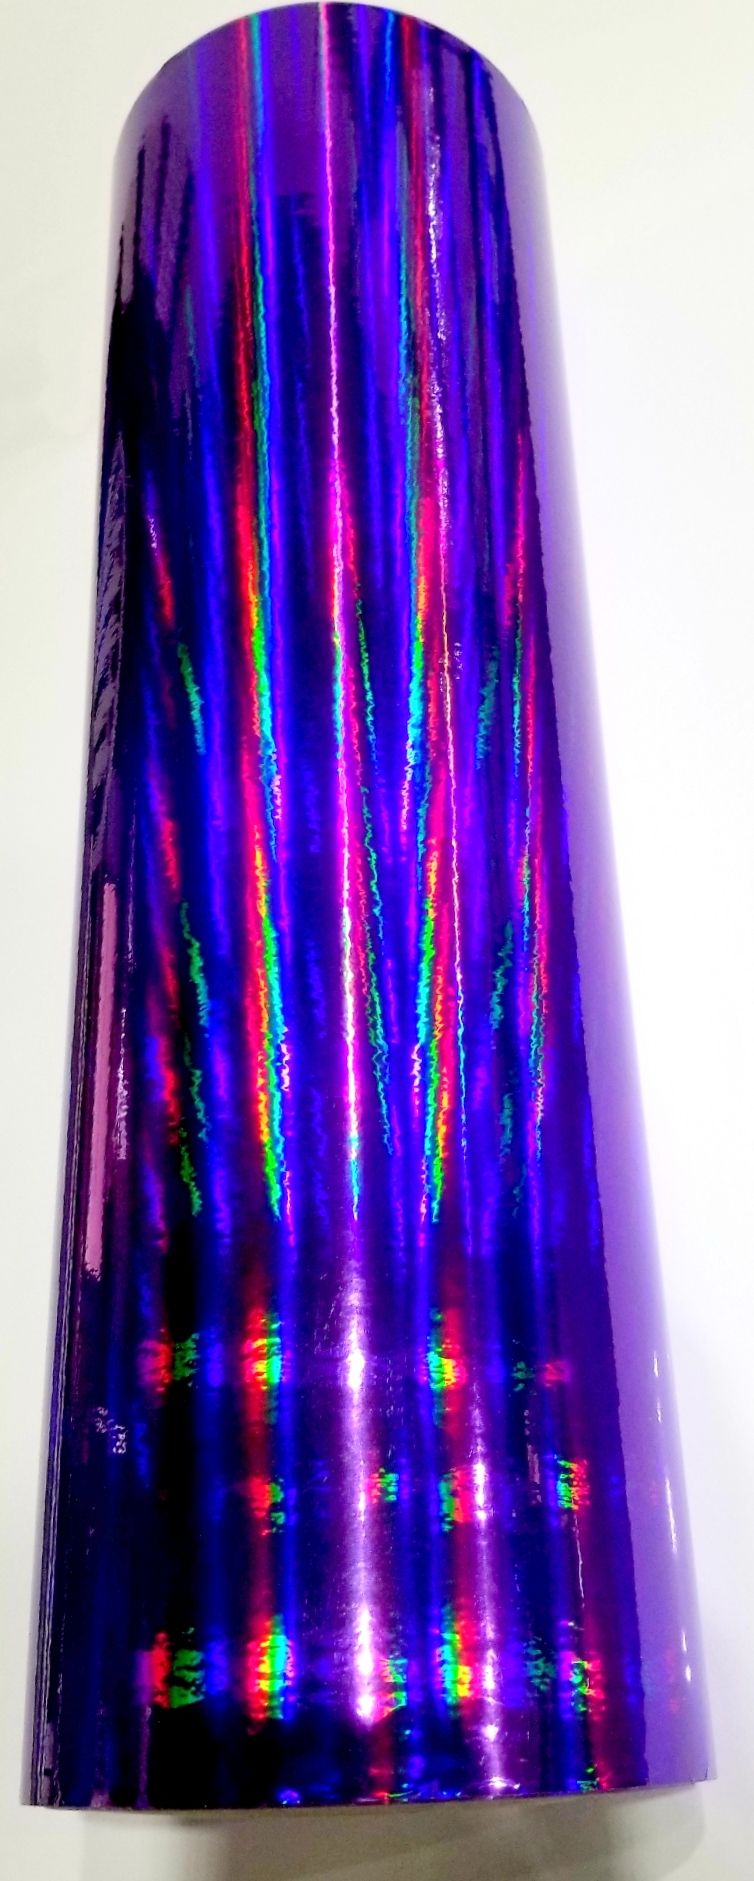 "24"" x 6 foot Royal Purple Oil Slick"